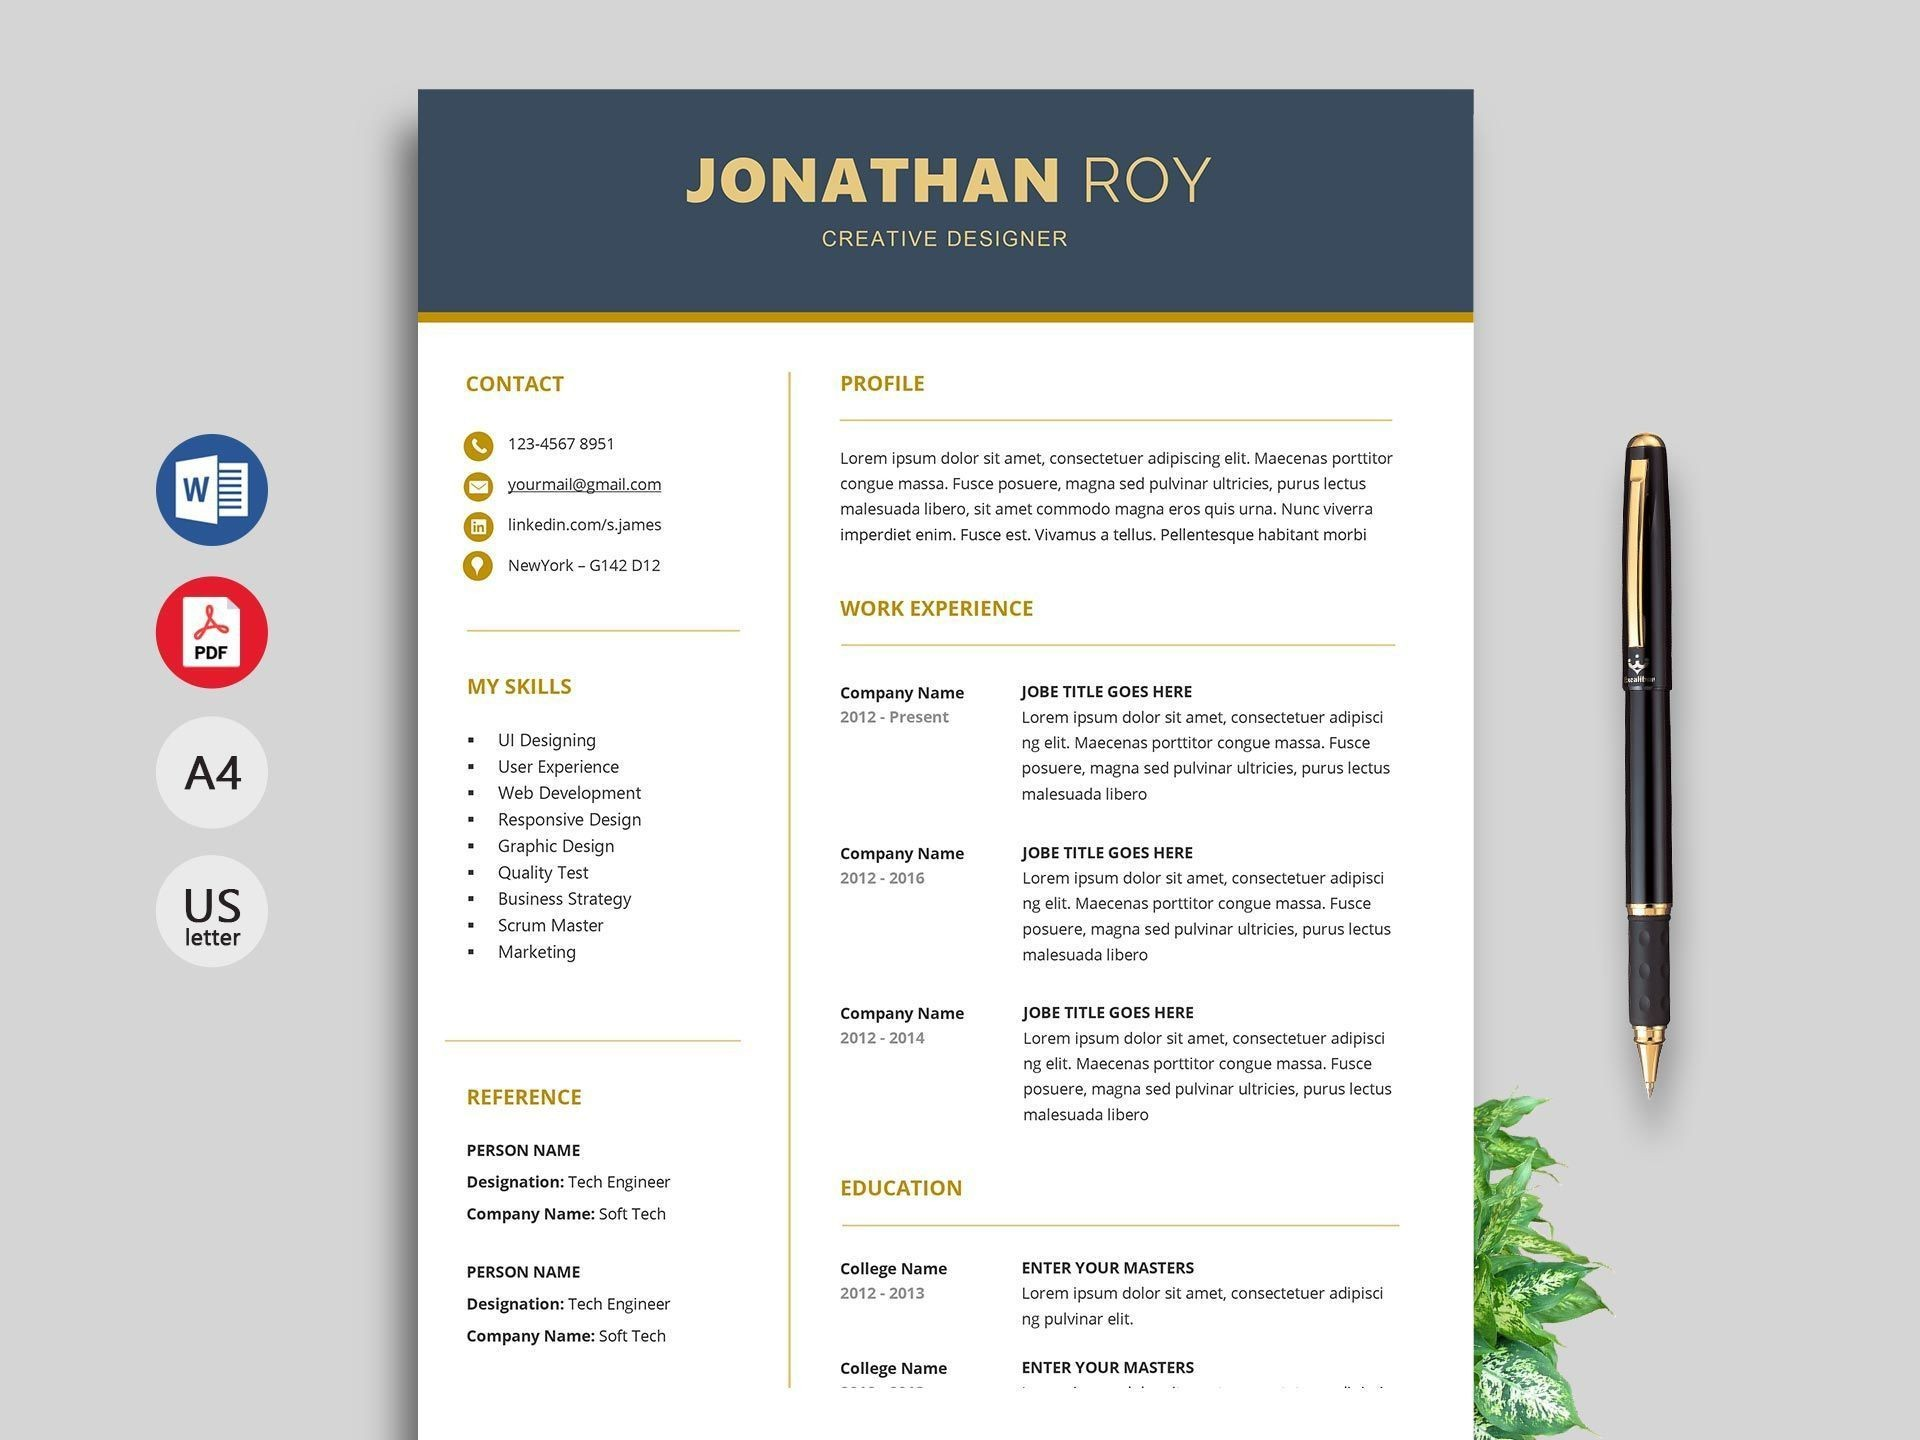 001 Fearsome Word Cv Template Free Download Inspiration  2020 Design Document For Student1920